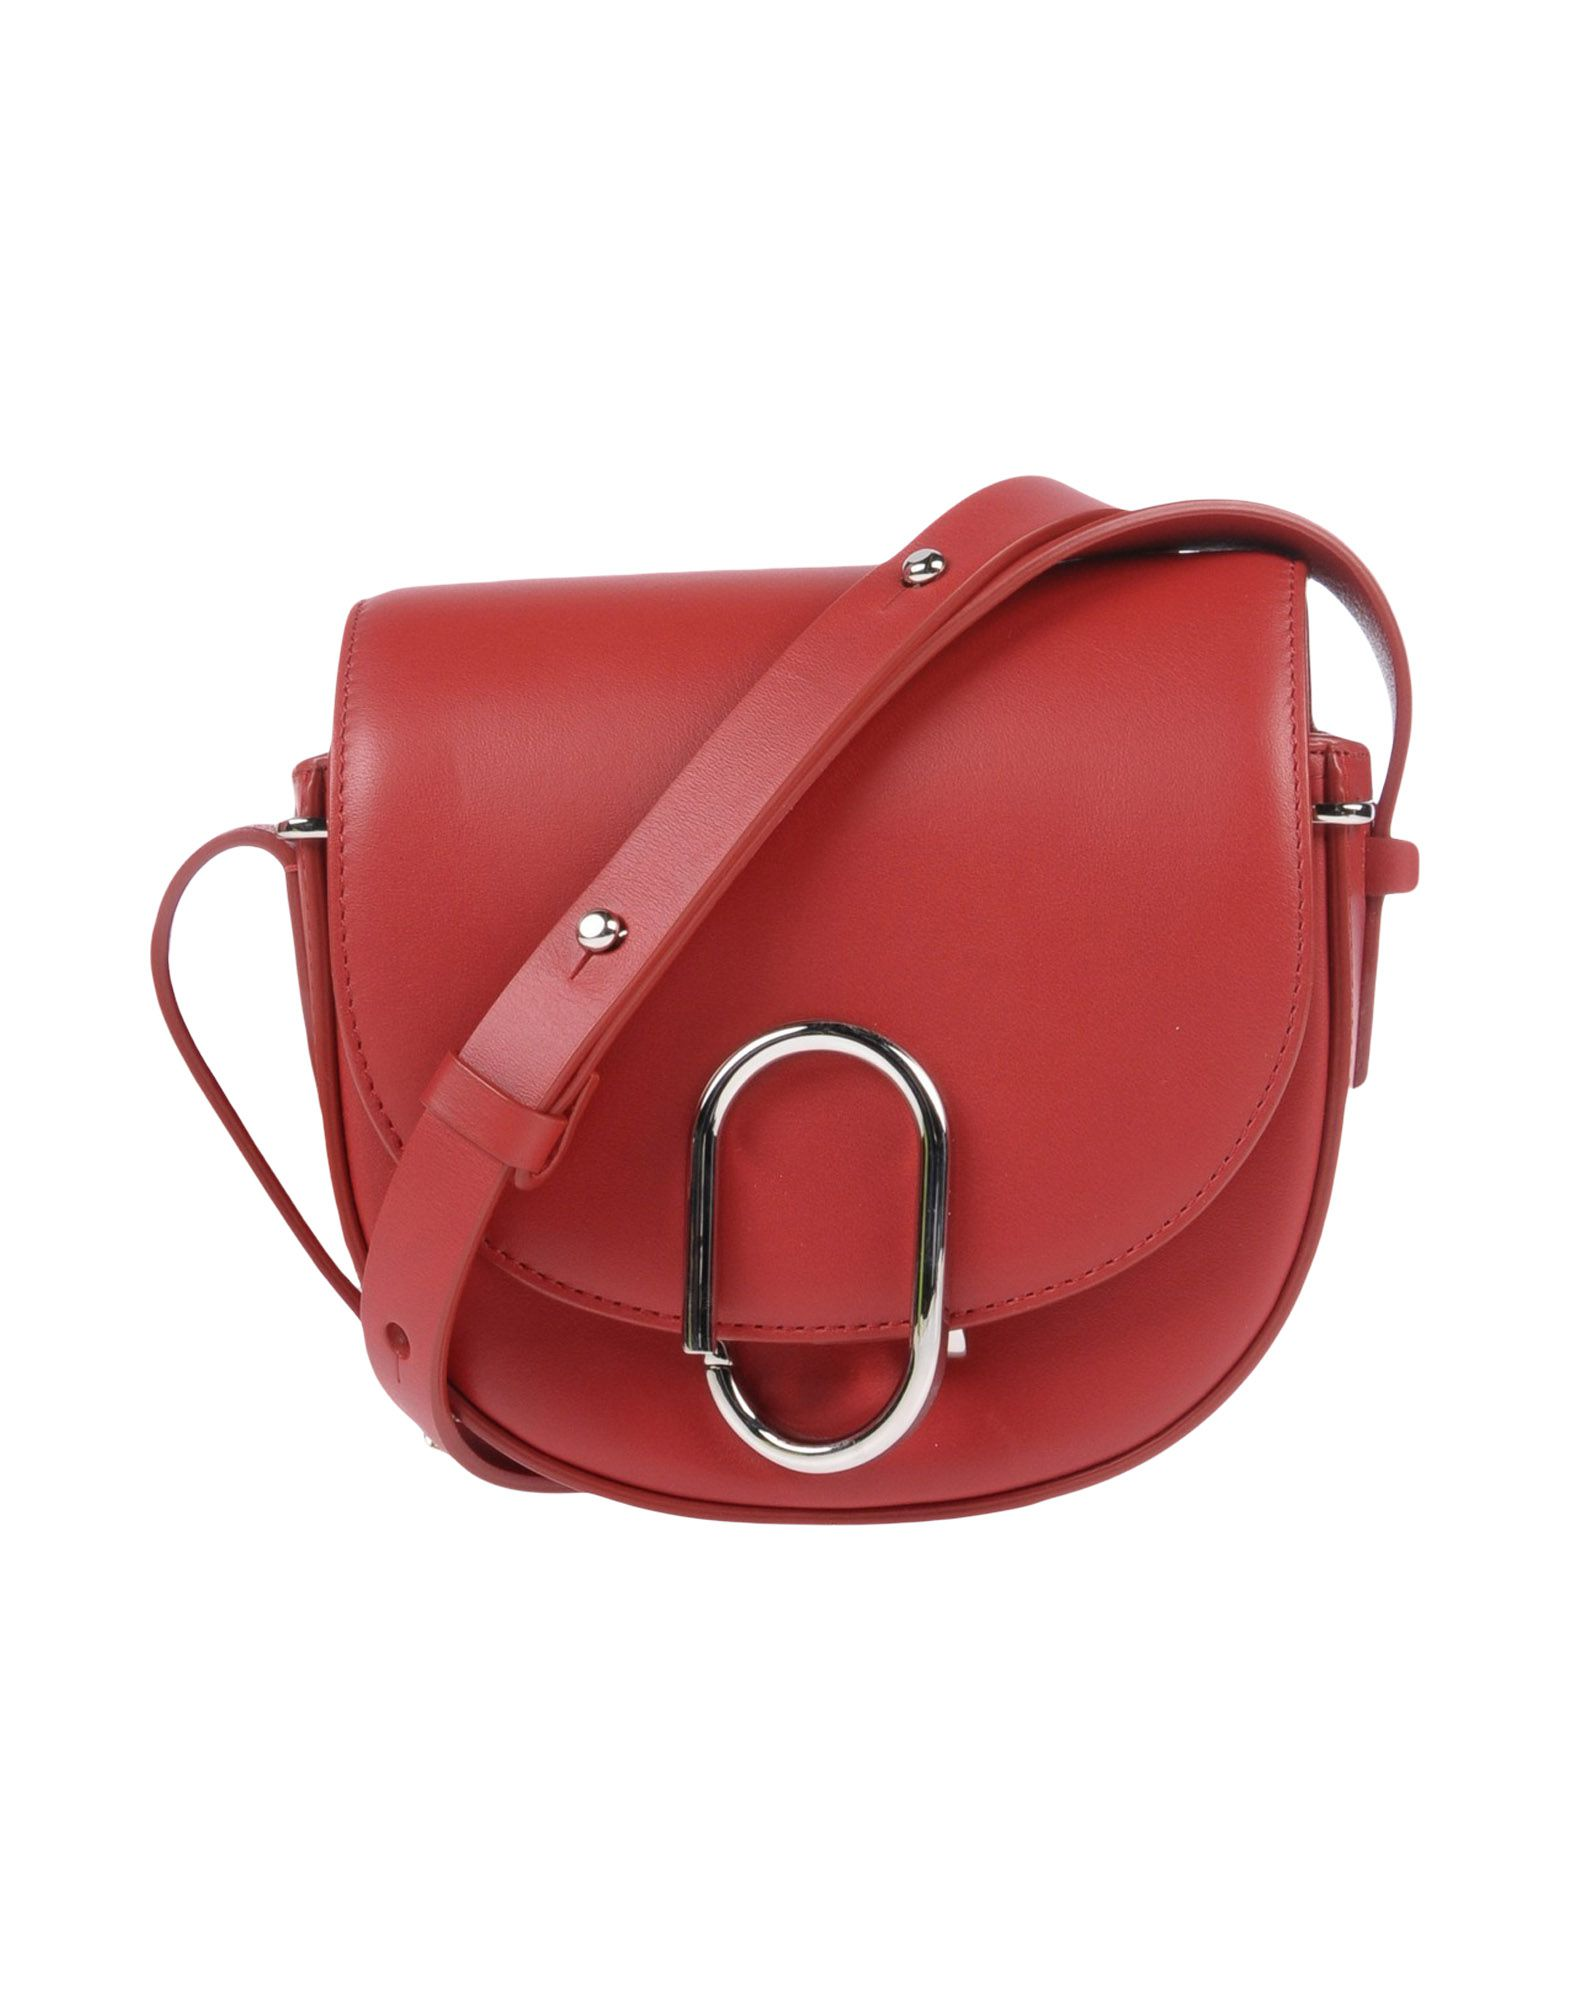 3.1 Phillip Lim Handbags In Red  a6aab8ec0